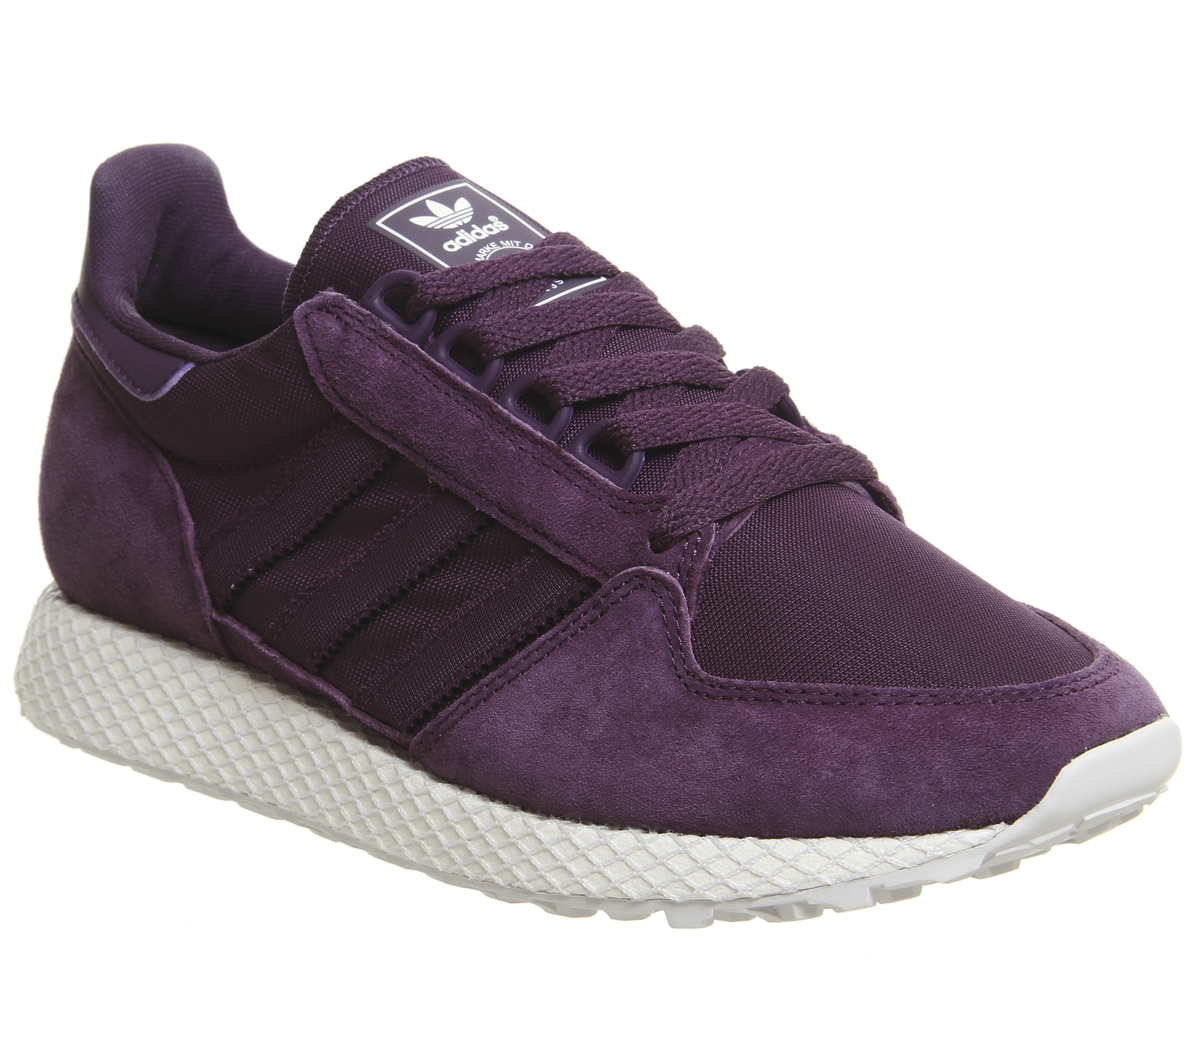 e11fc038ad4e81 Sentinel Womens Adidas Forest Grove Trainers Red Night Cloud White Grey One  Trainers Shoe